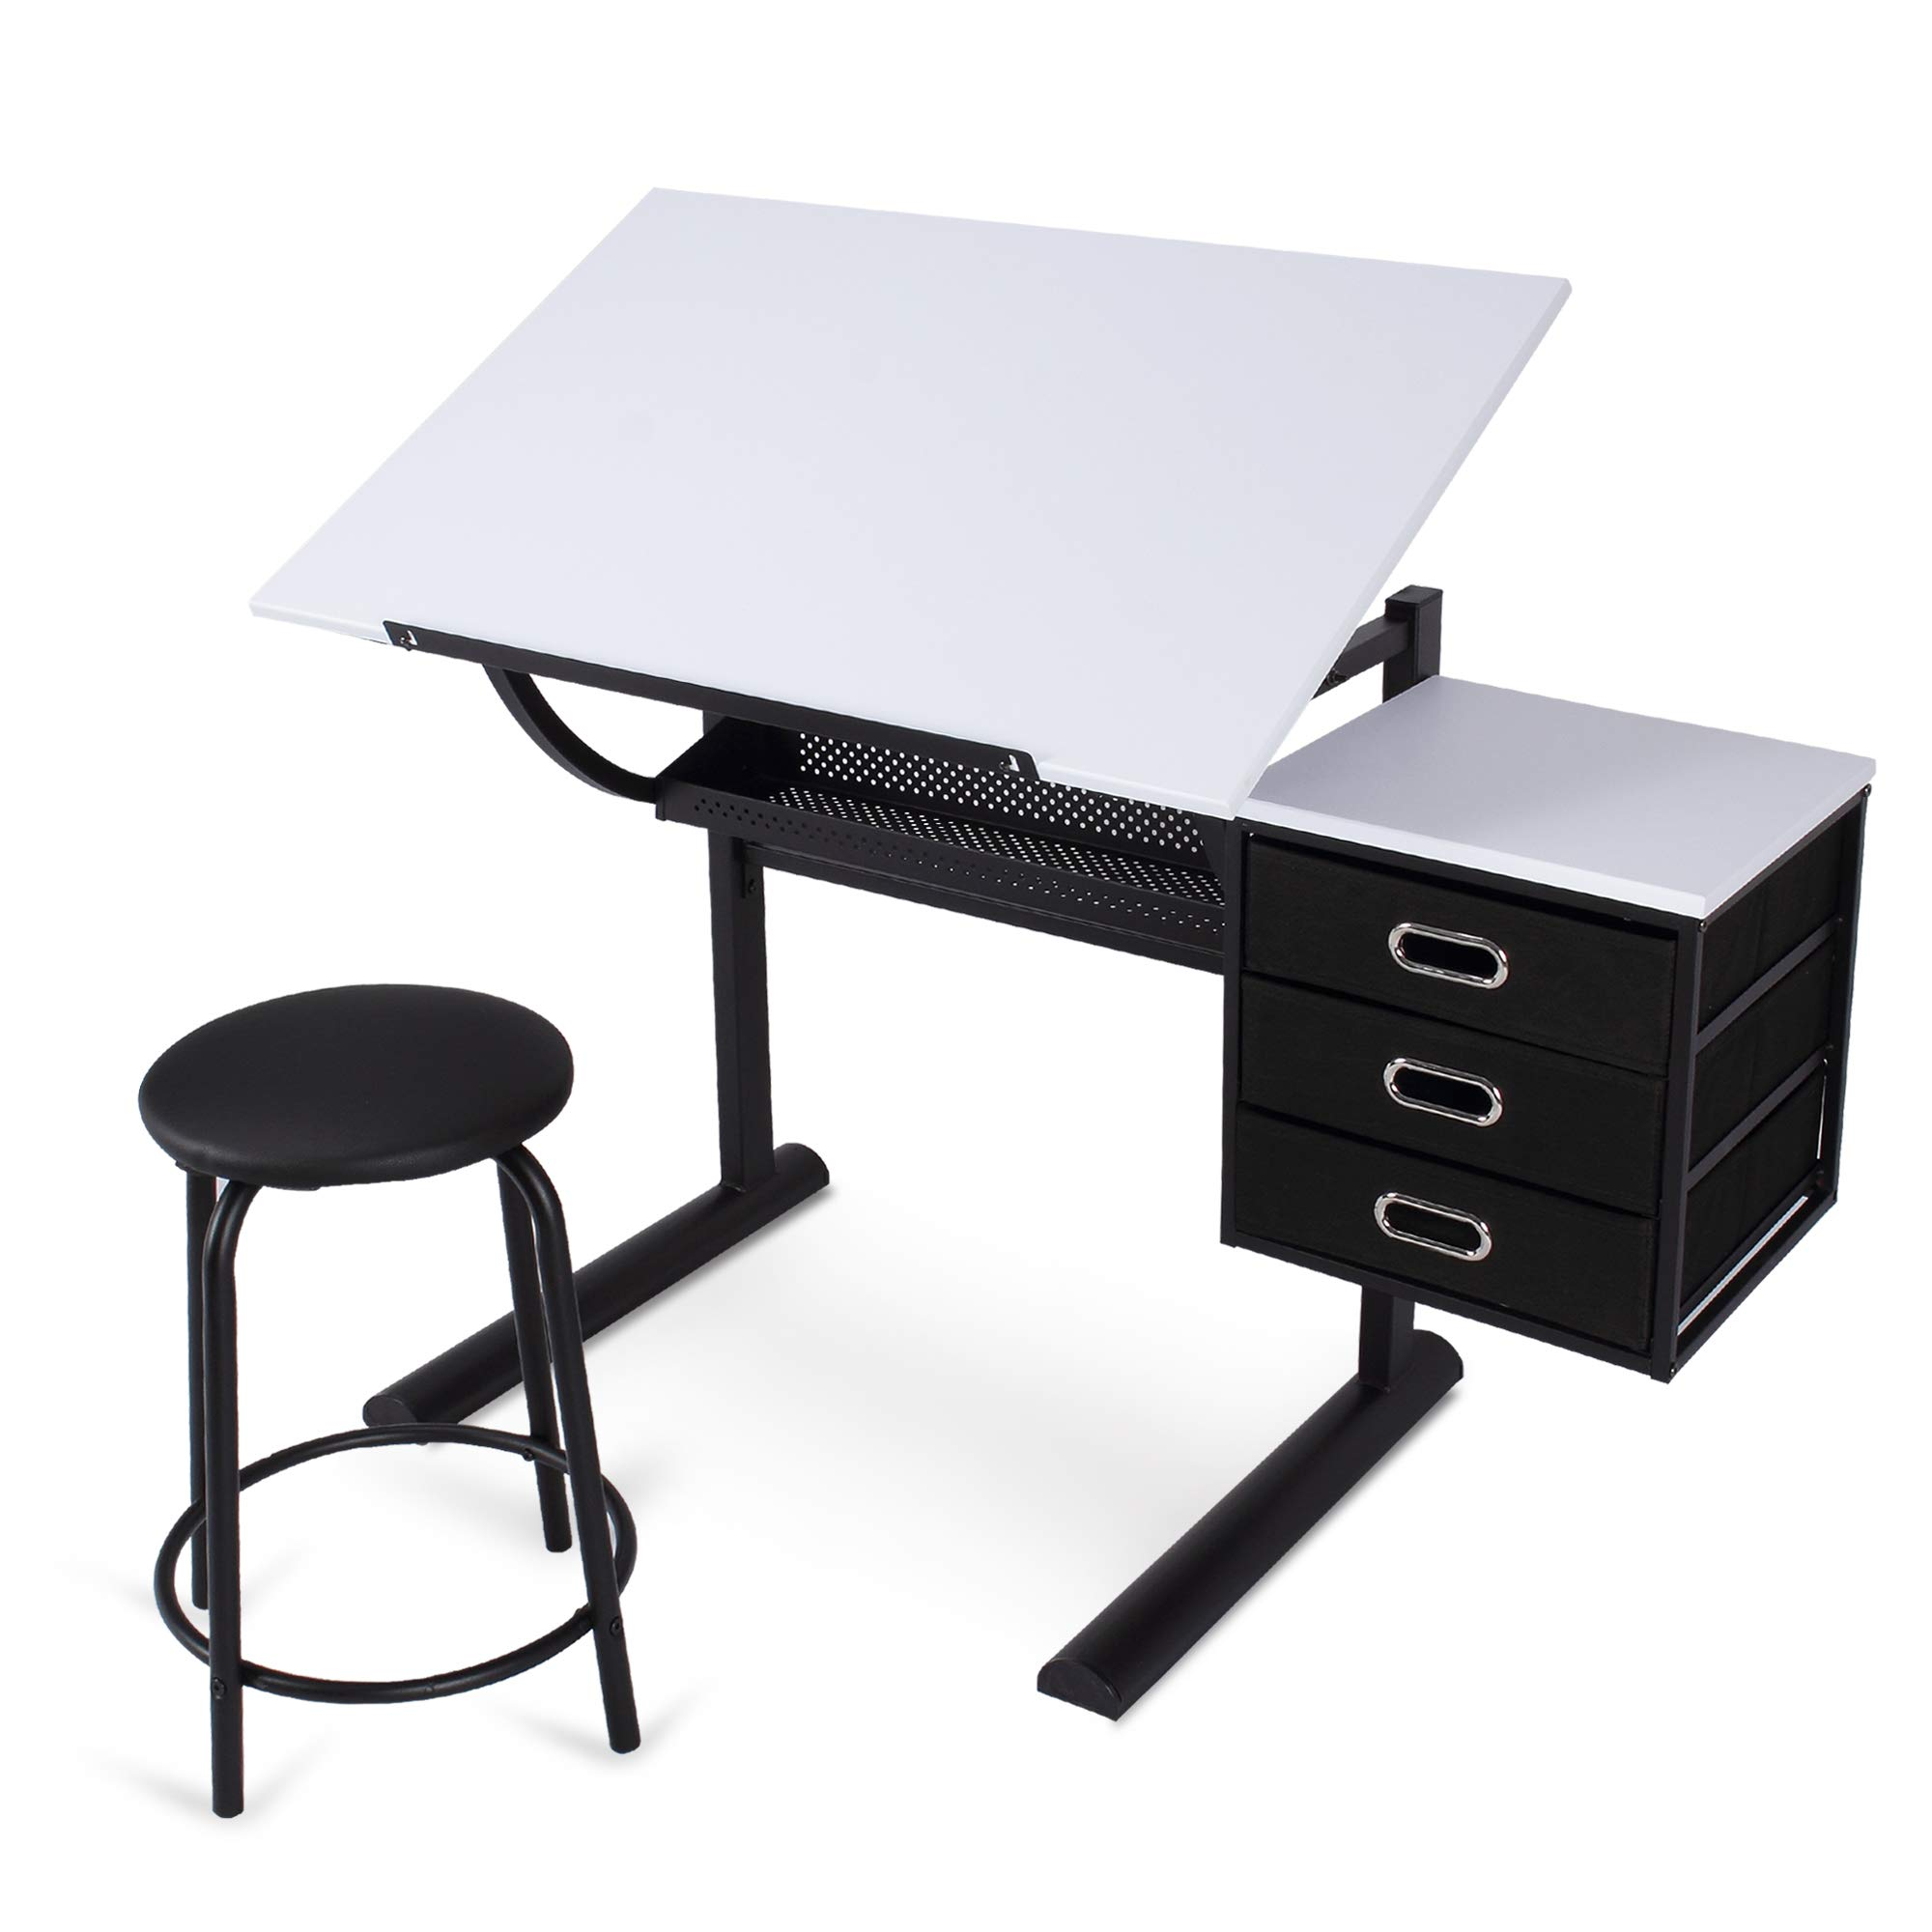 Belleze Adjustable Craft and Drawing Table w/Storage Drawers and Padded Stool, Black and White by Belleze